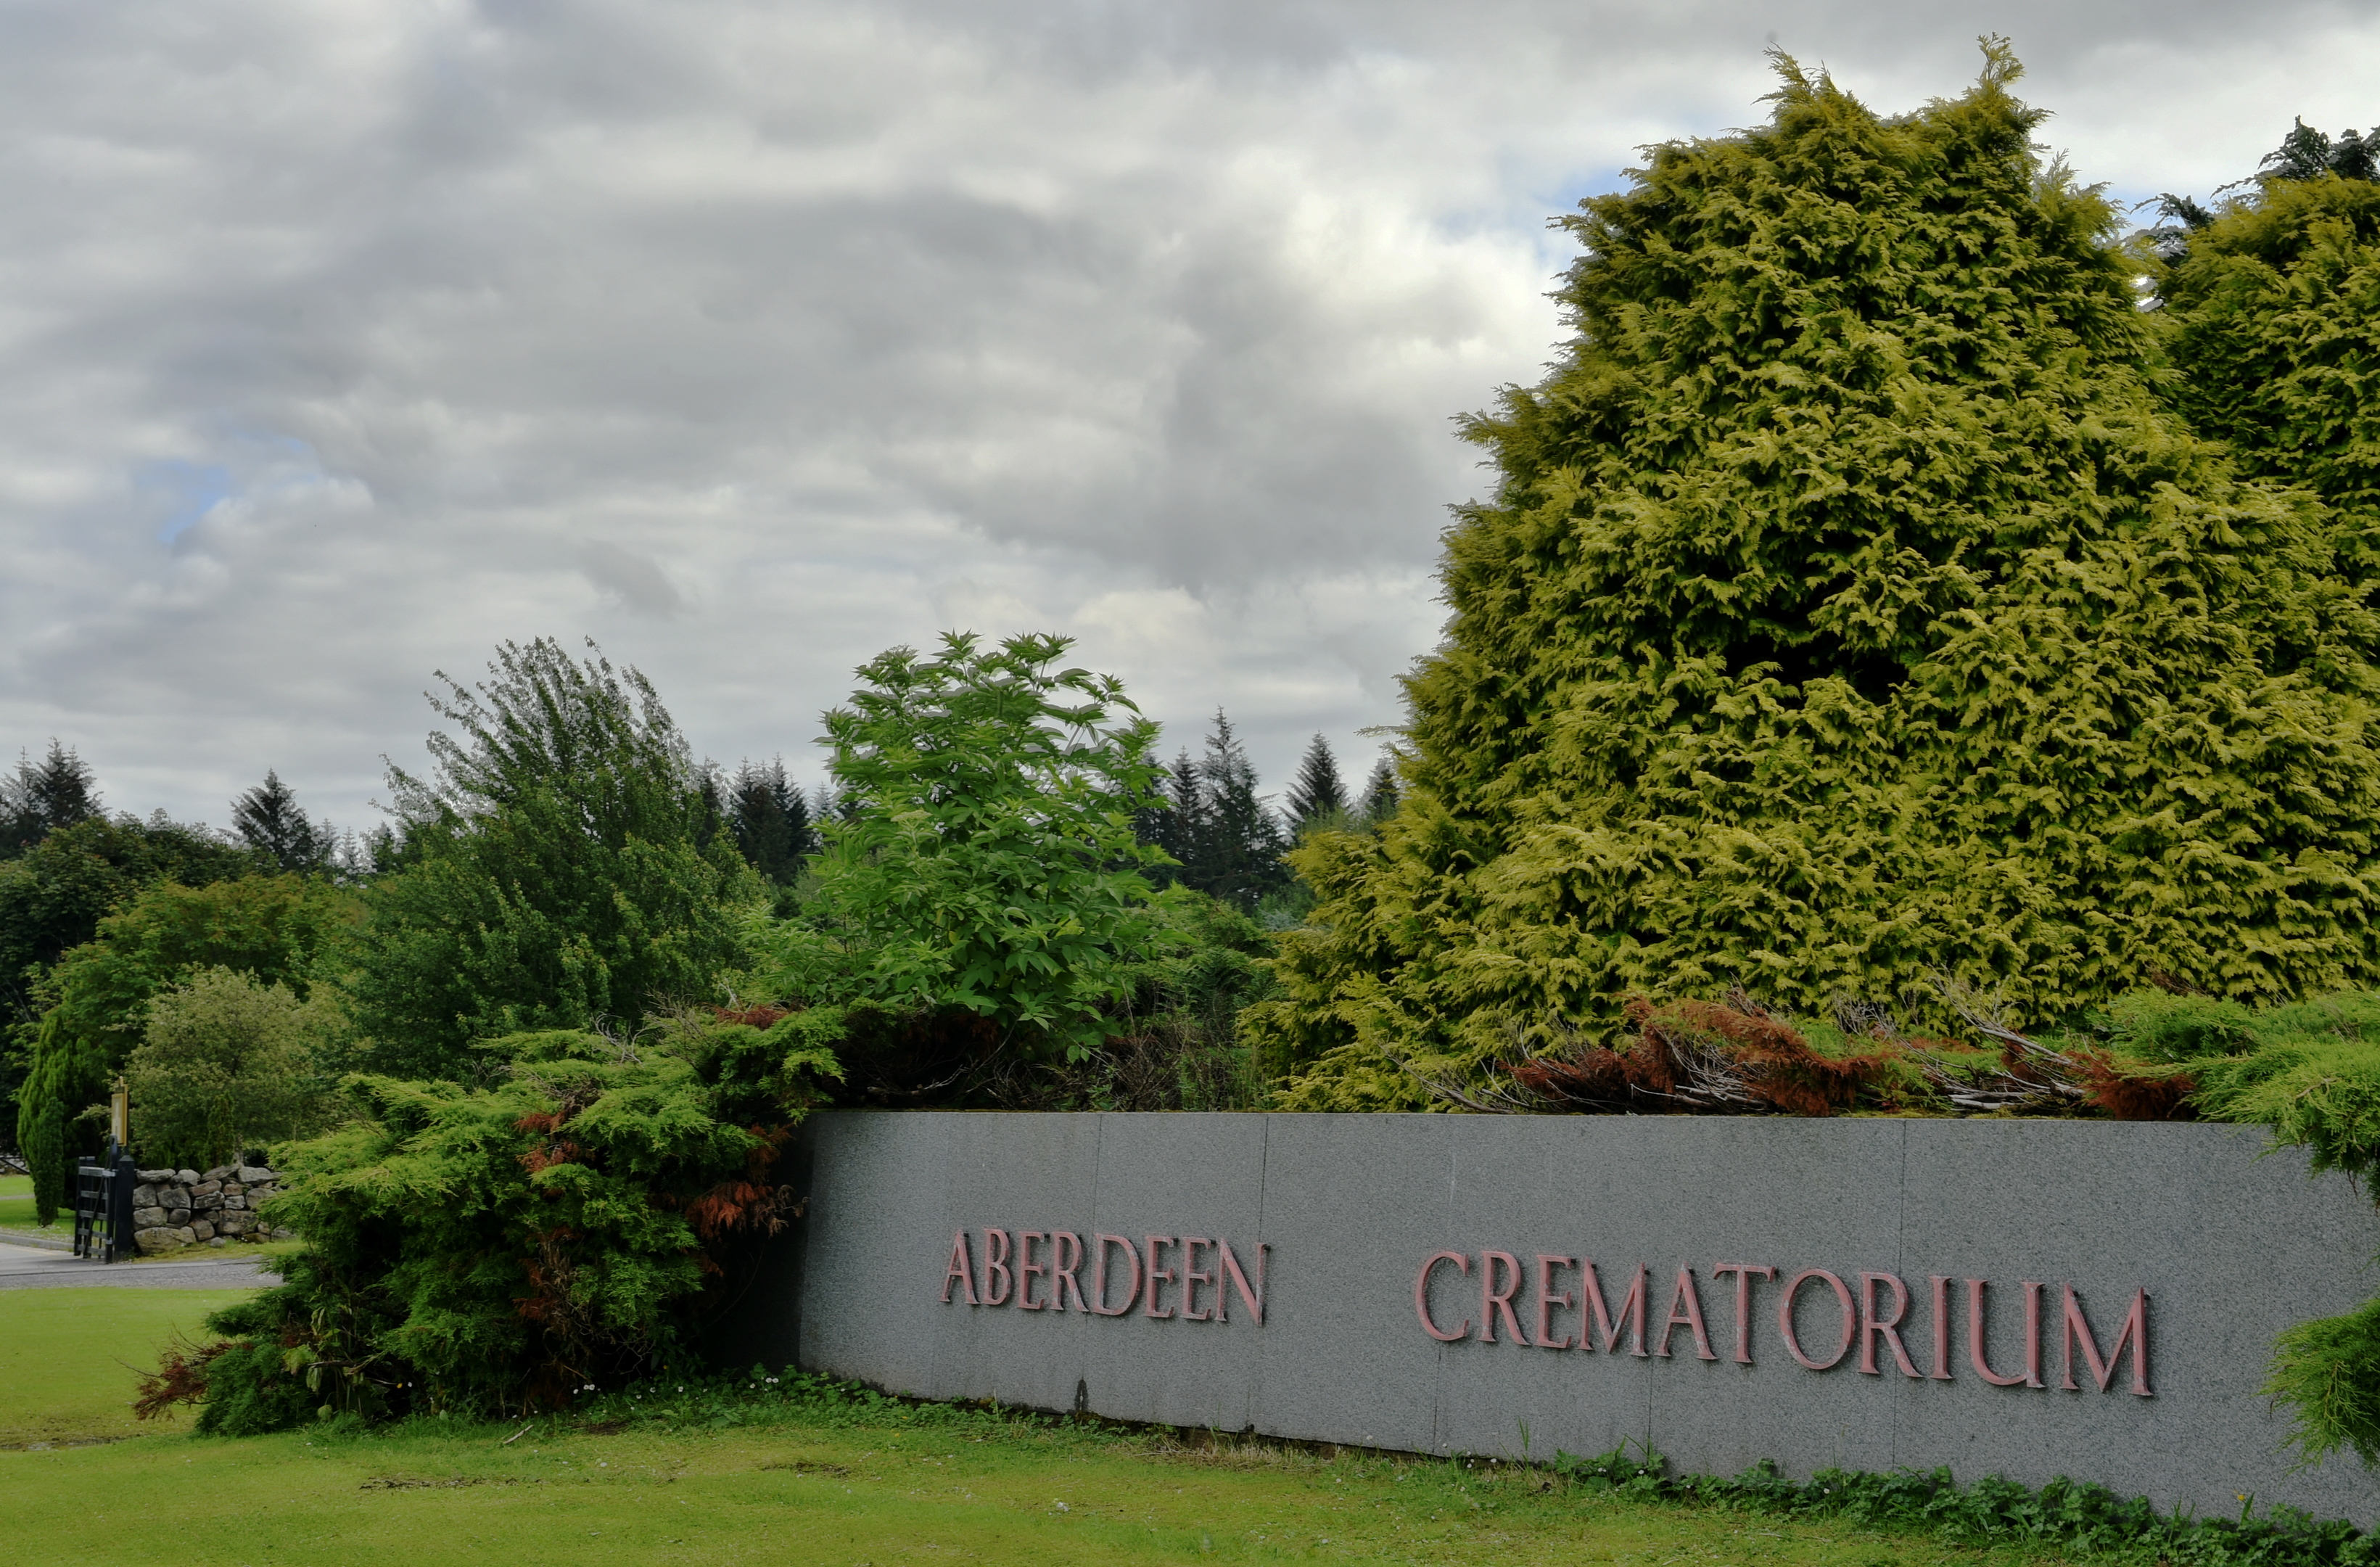 Aberdeen Crematorium was implicated in the baby ashes affair.